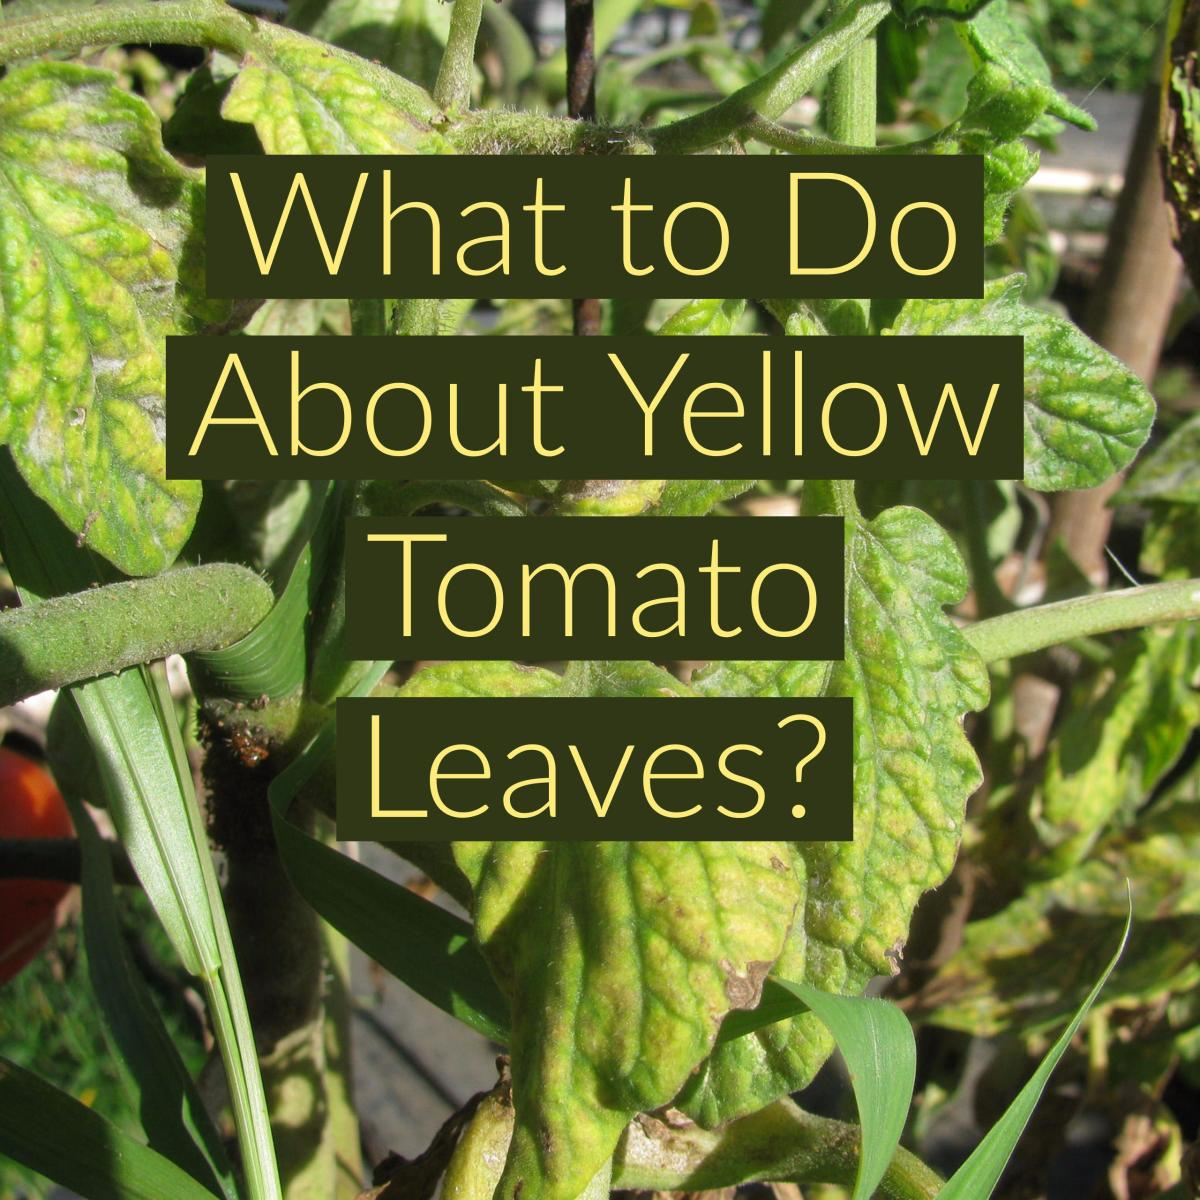 7 Causes & Cures of Yellow Leaves on Tomato Plants